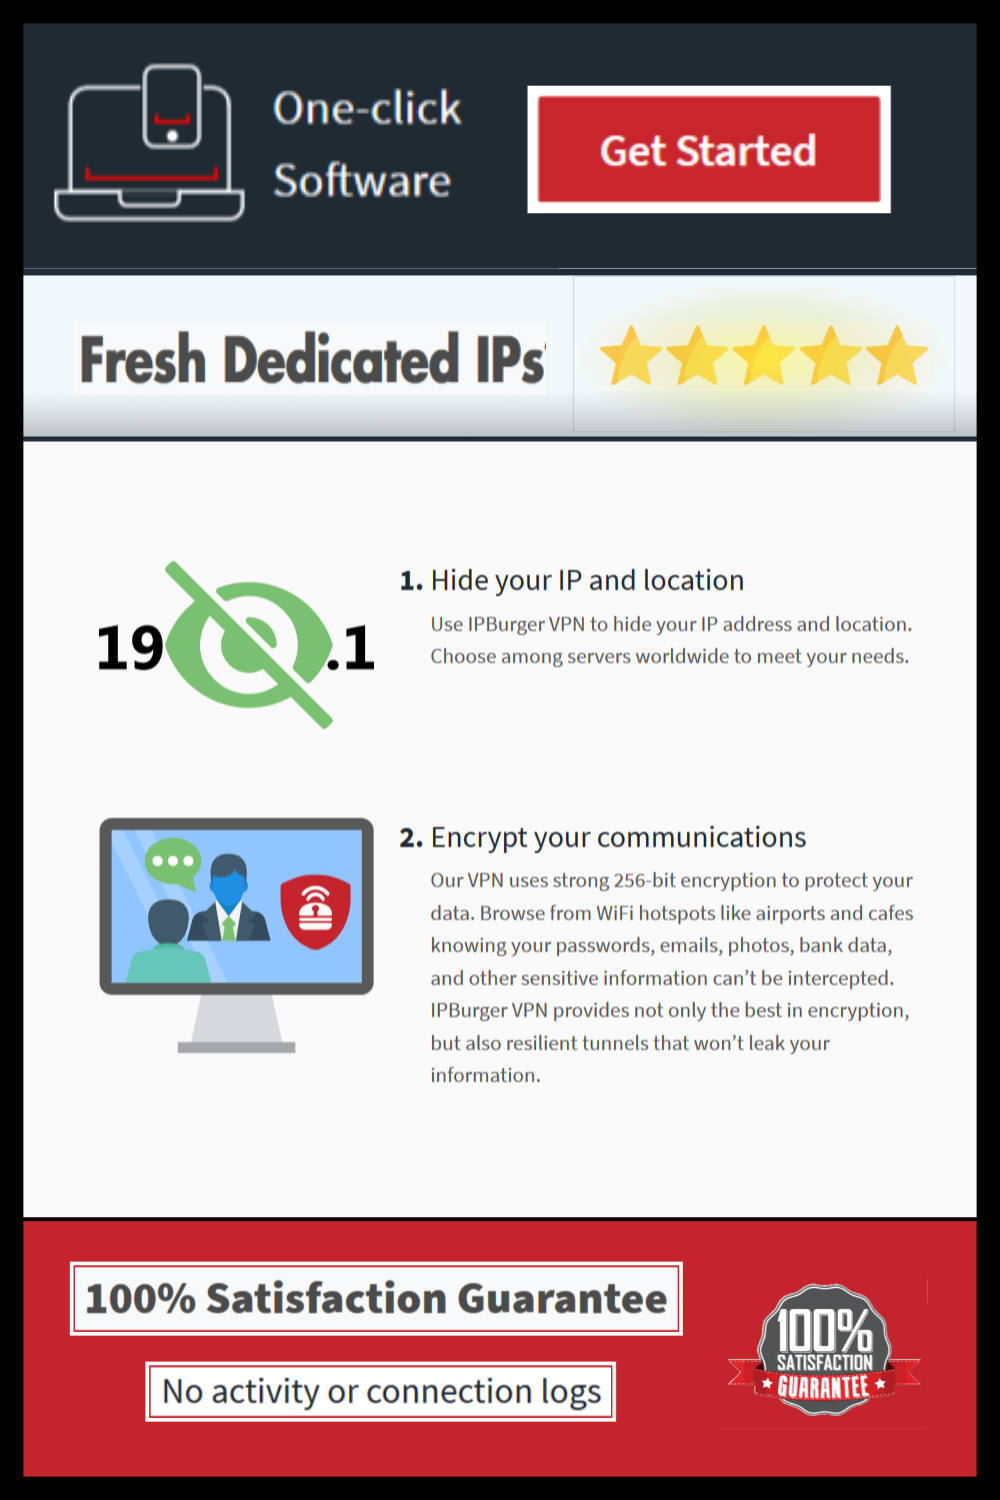 One of the Best VPN Provider. Fresh Dedicated IP. Can be